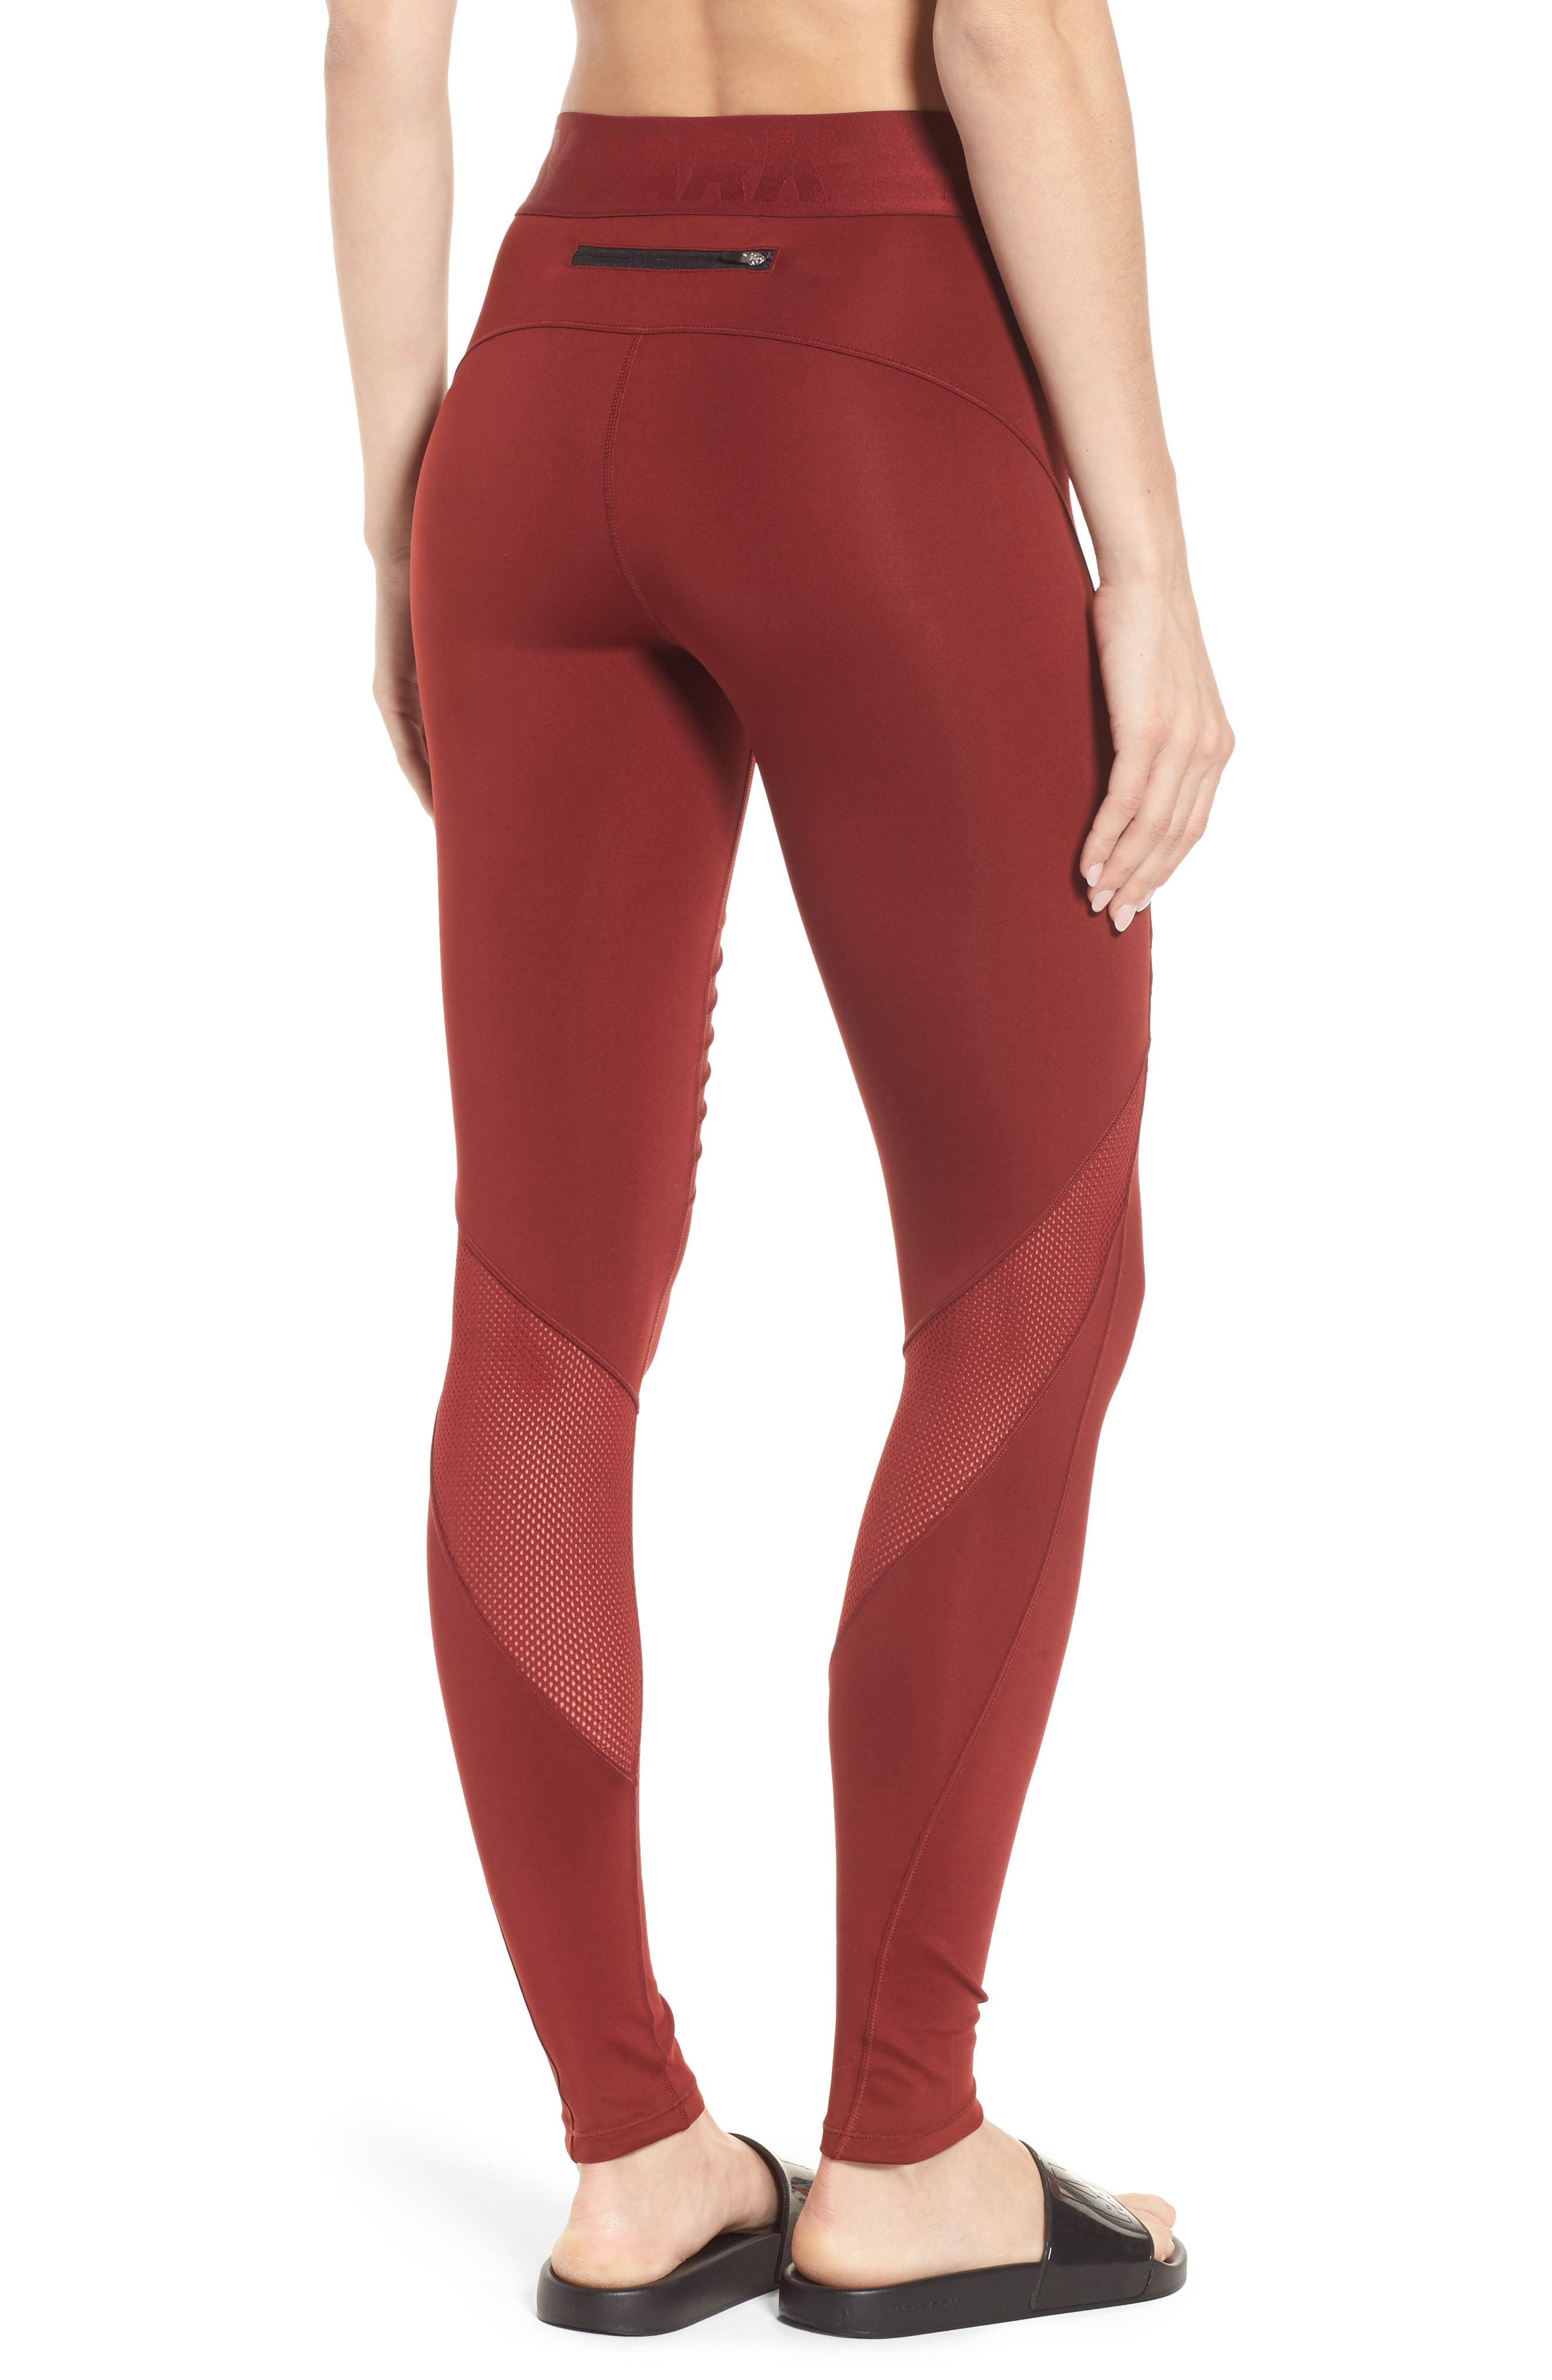 Pintuck Leggings,                             Alternate thumbnail 5, color,                             Russet